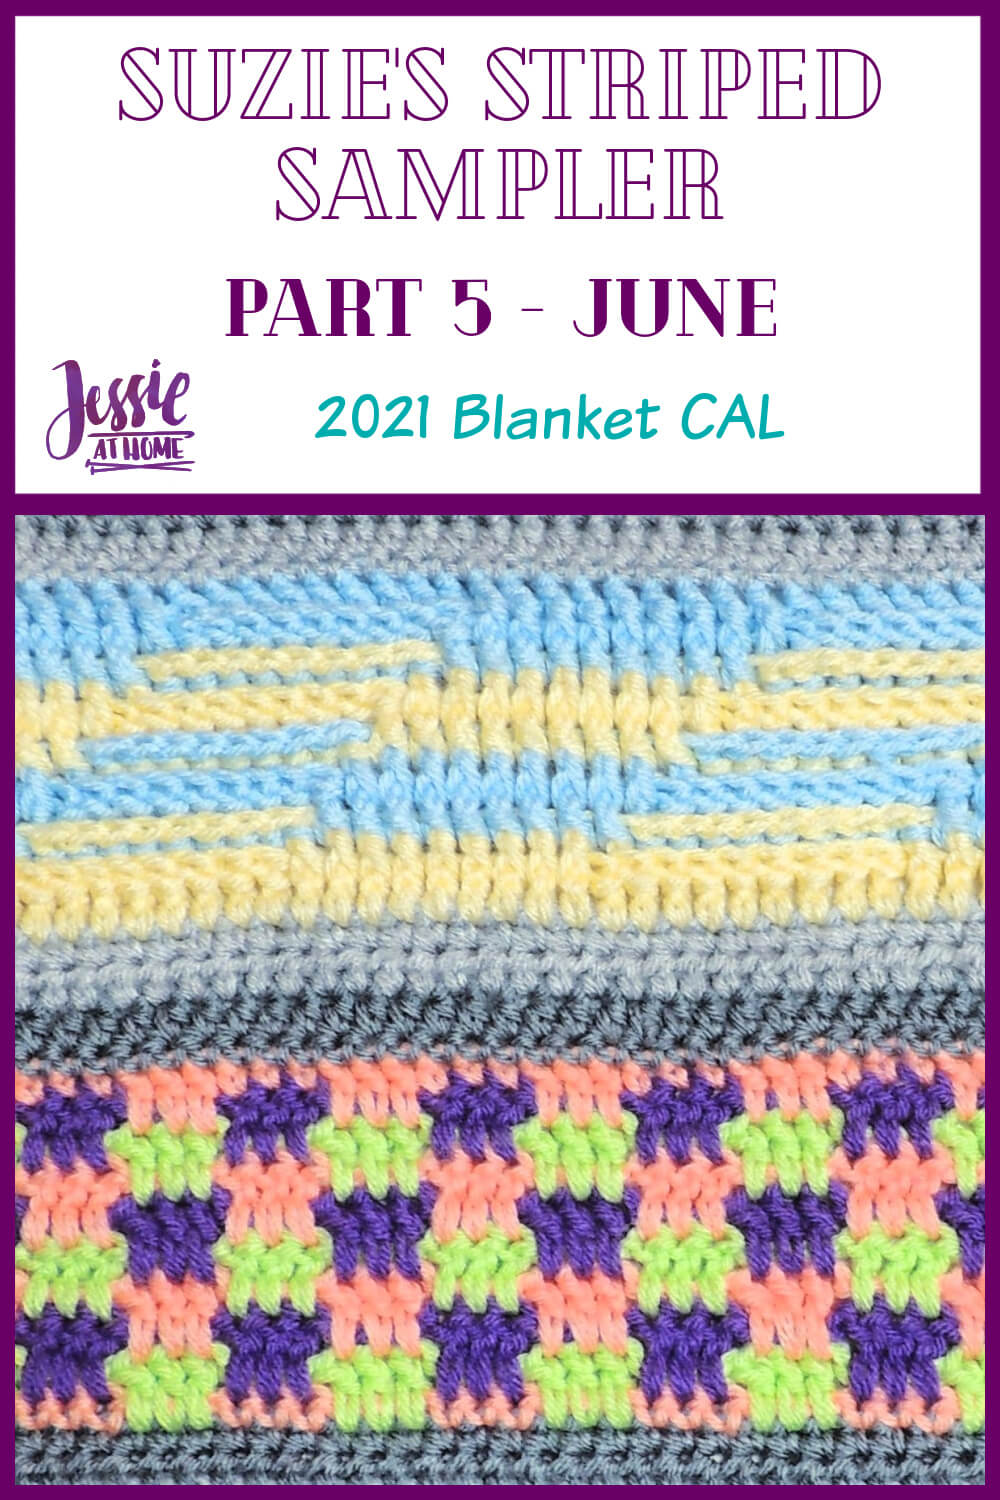 Suzie's Striped Sampler Part 5 by Jessie At Home - Feature